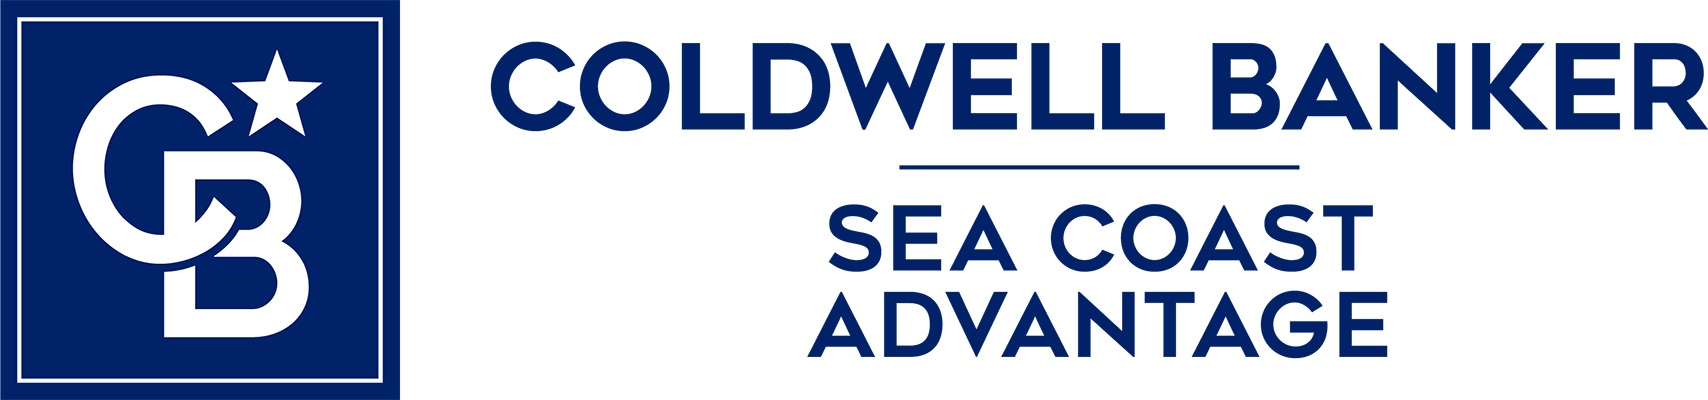 Les Christensen - Coldwell Banker Sea Coast Advantage Realty